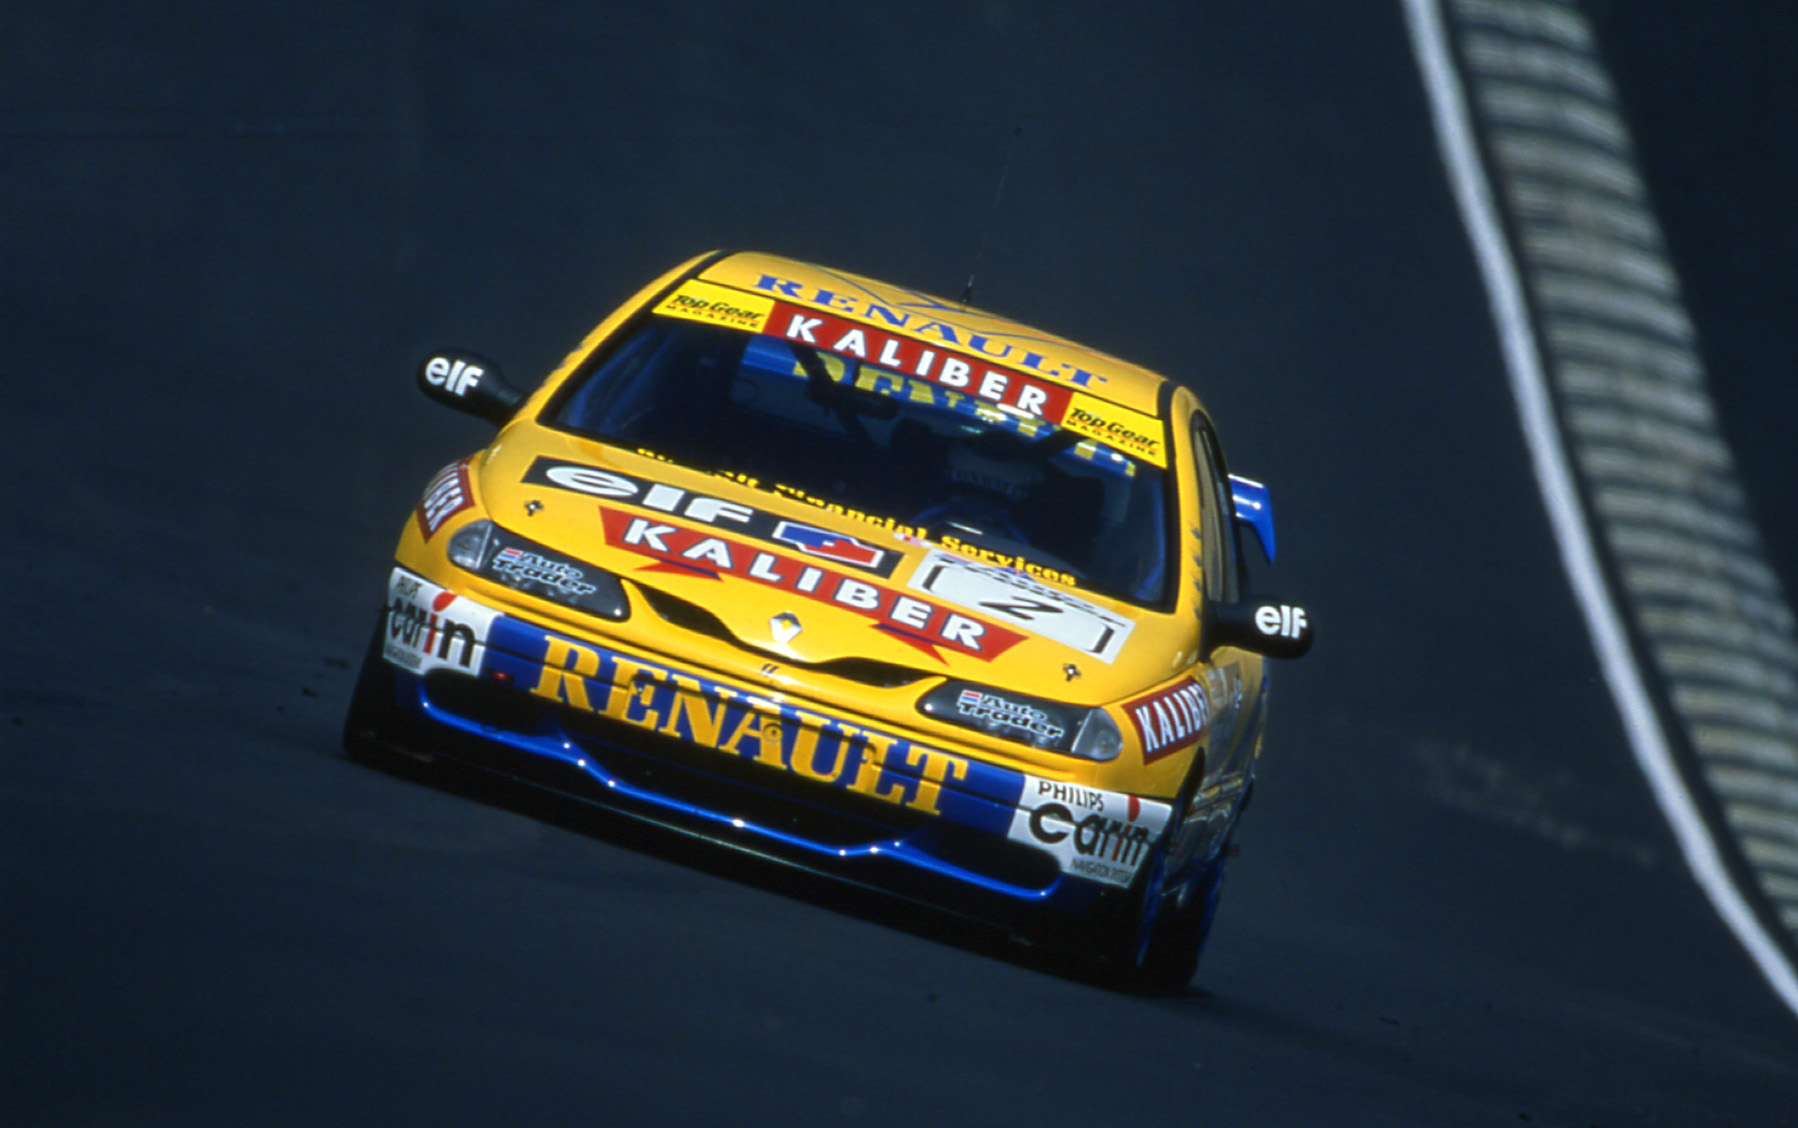 Alain Menu in his title destroying Laguna in 1997. Image Credit: btccrazy.net